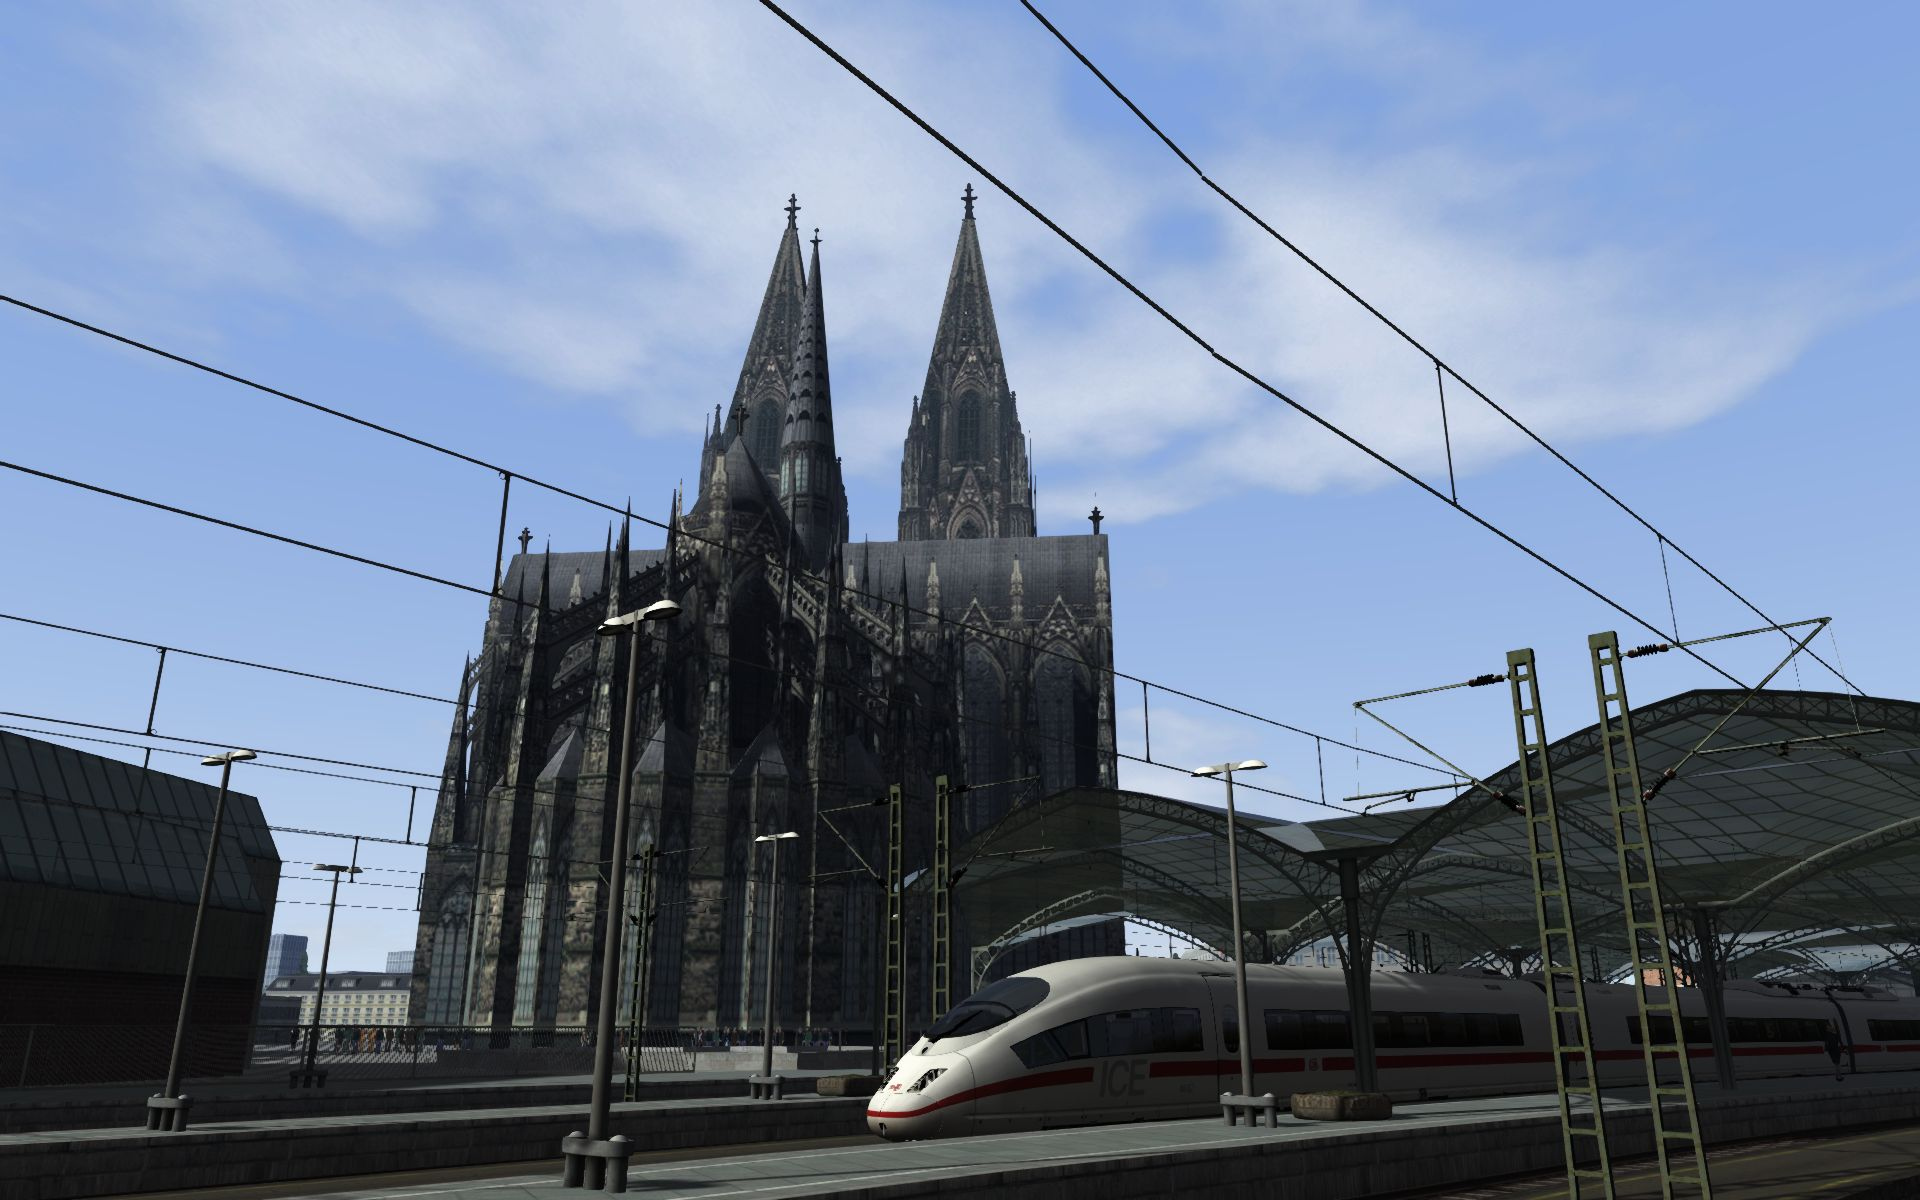 ICE3 at the Kölner Dom